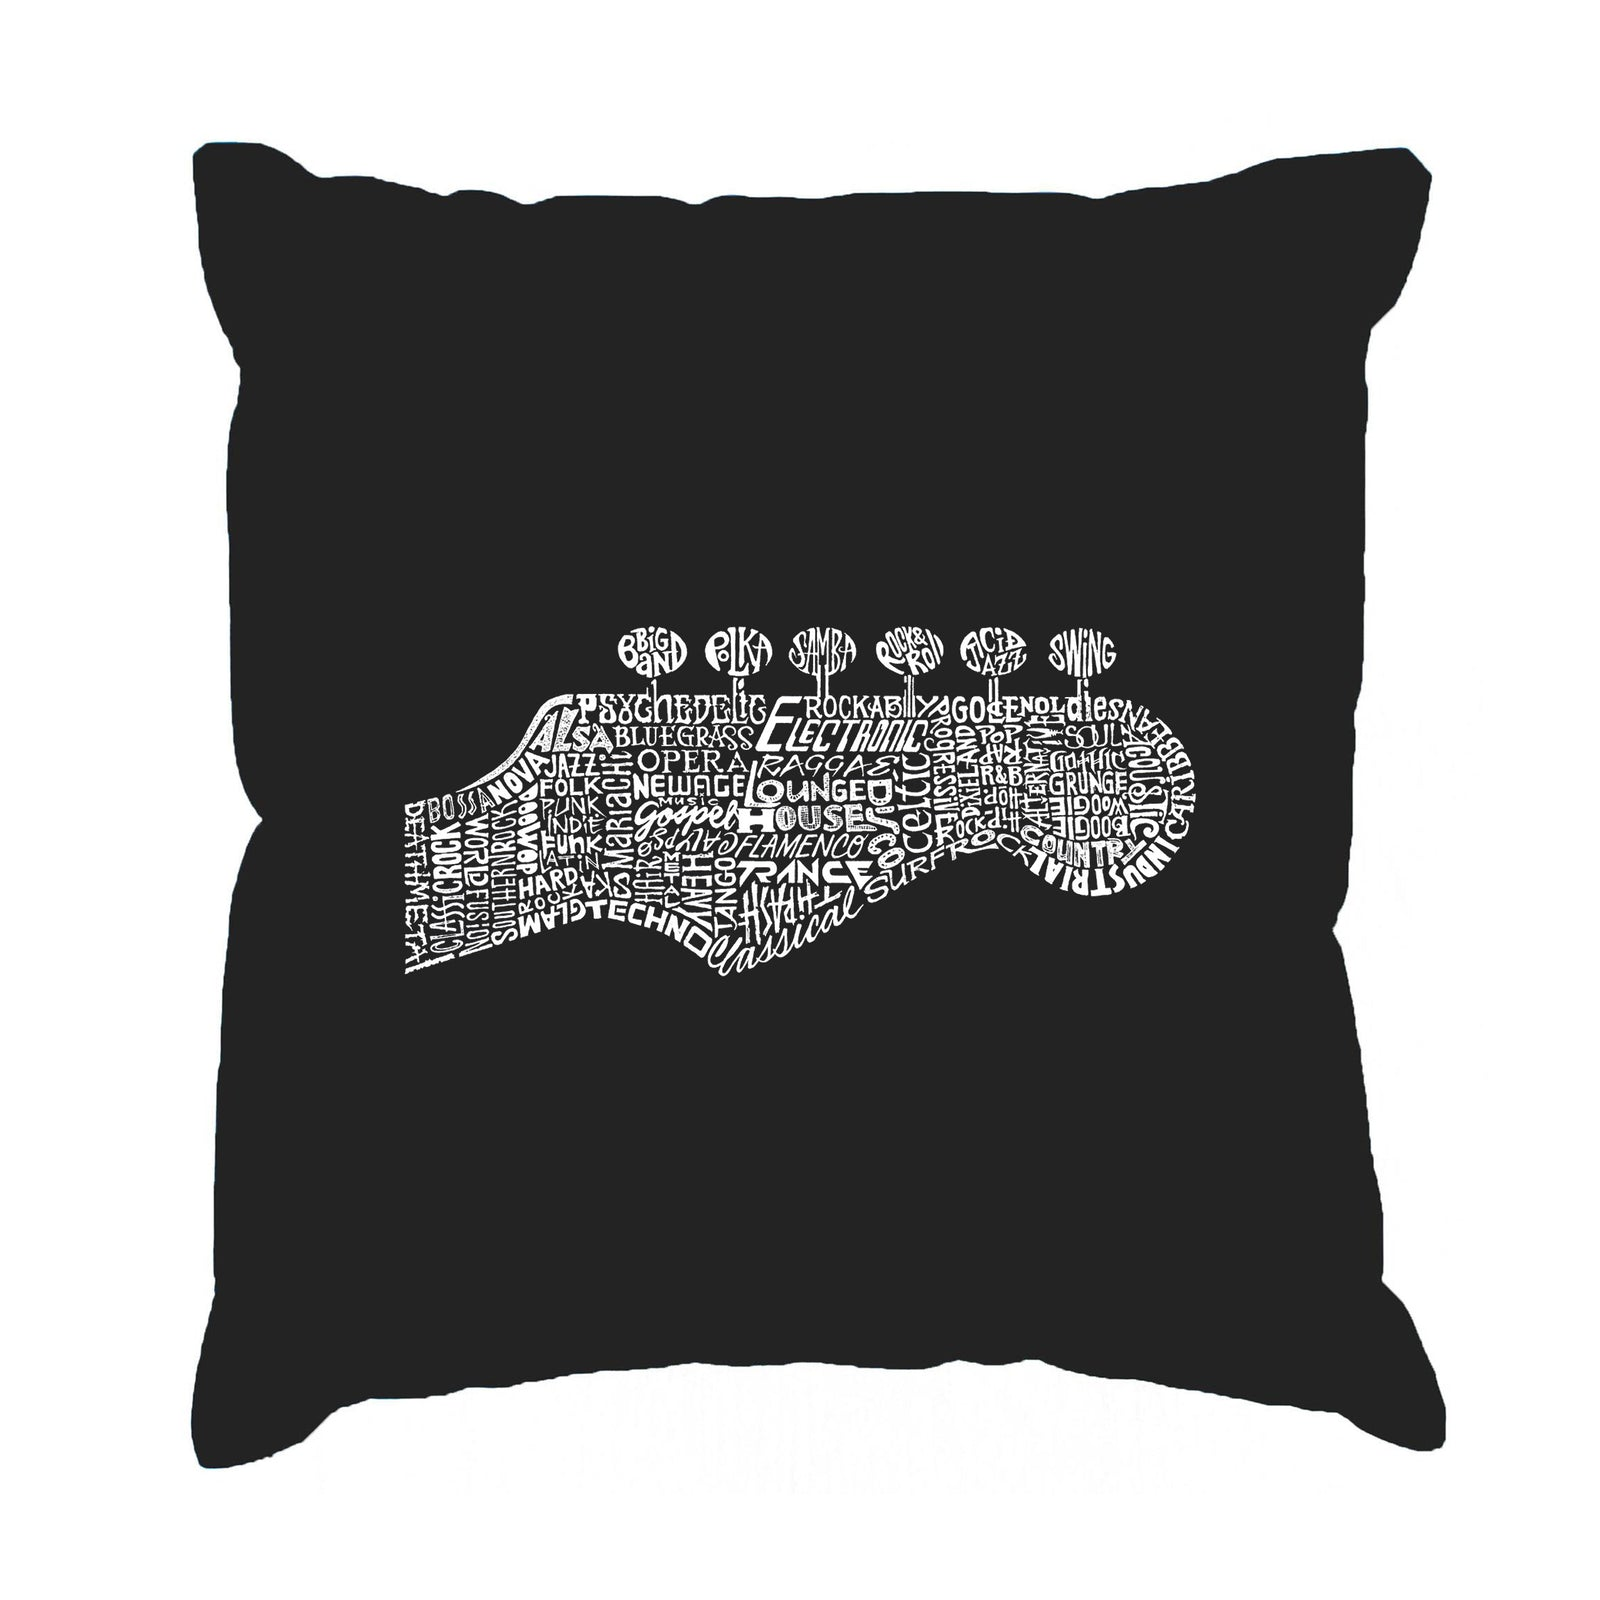 Throw Pillow Cover - Guitar Head